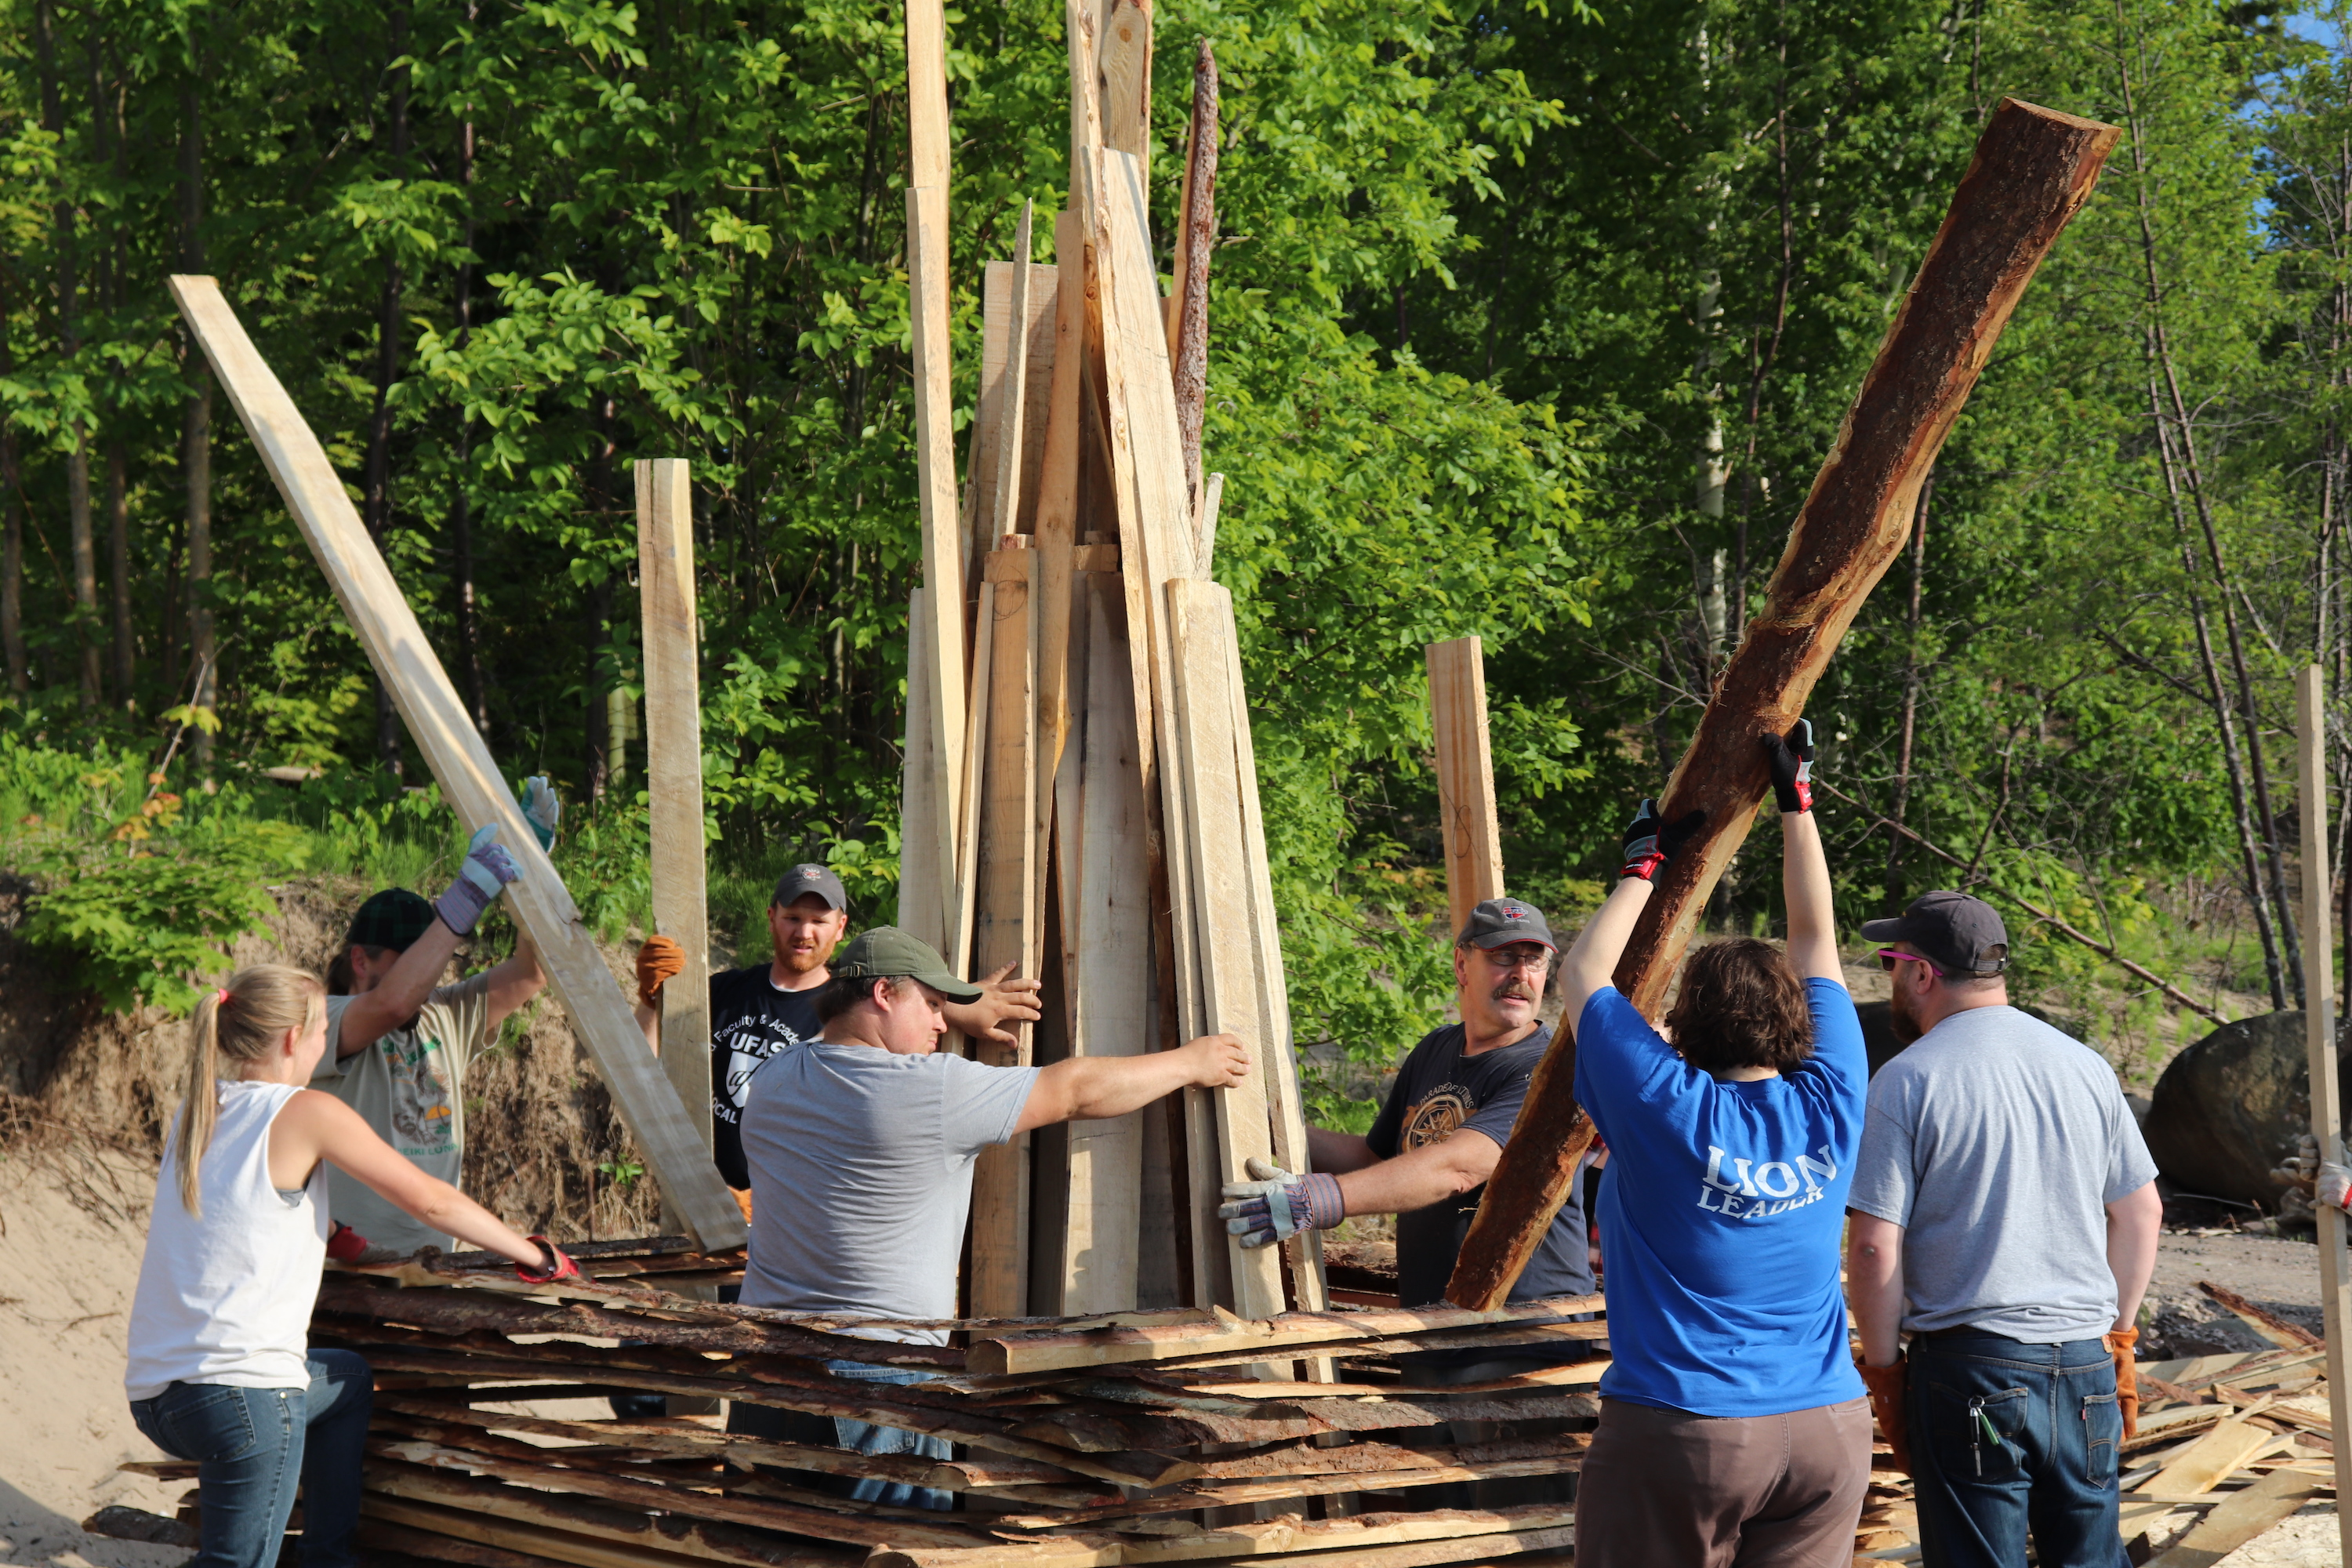 Volunteers continue to build the bonfire